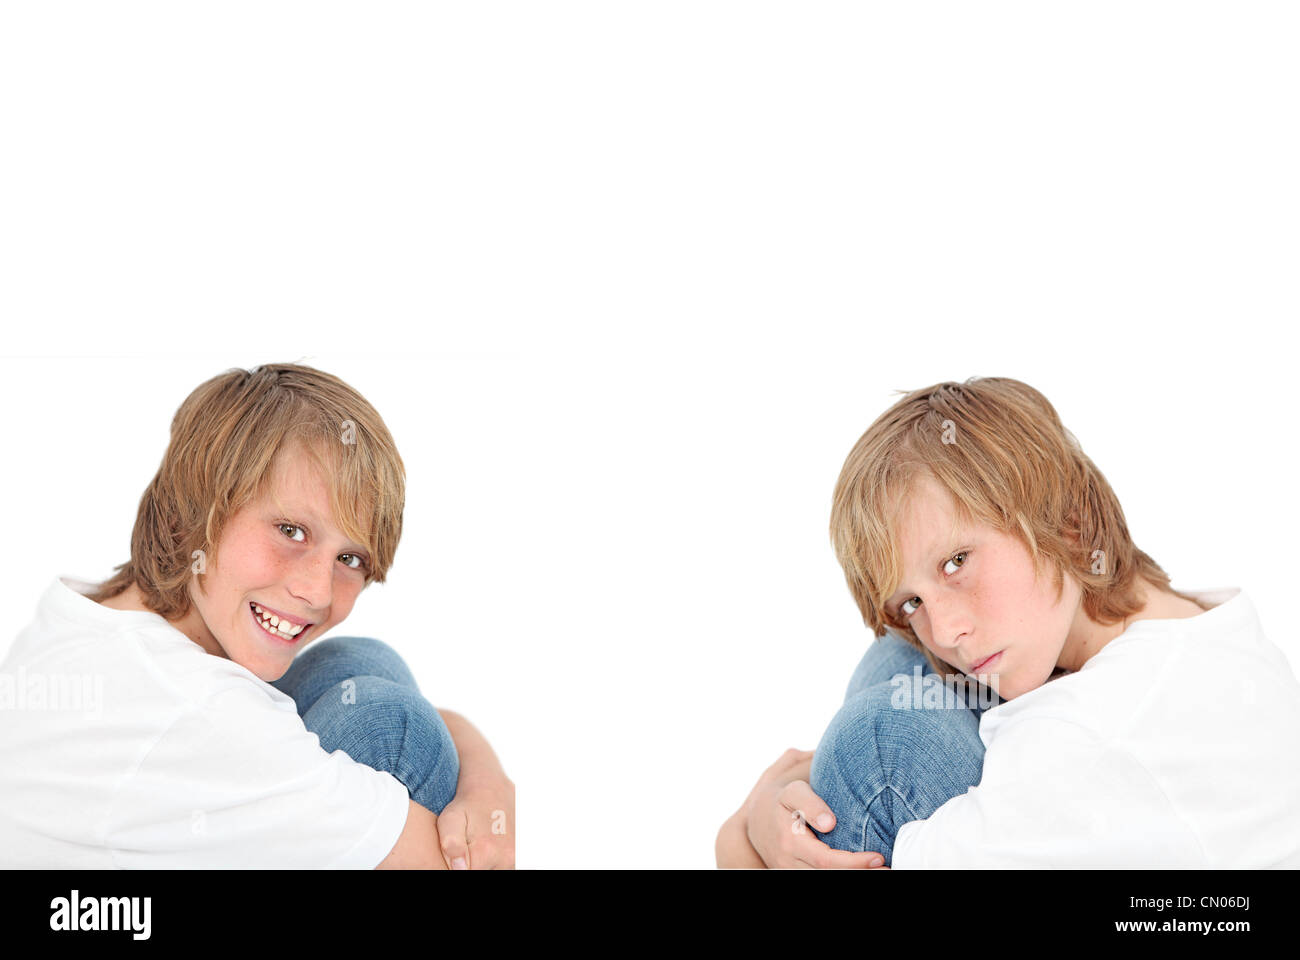 happy sad, twins with different personalities - Stock Image